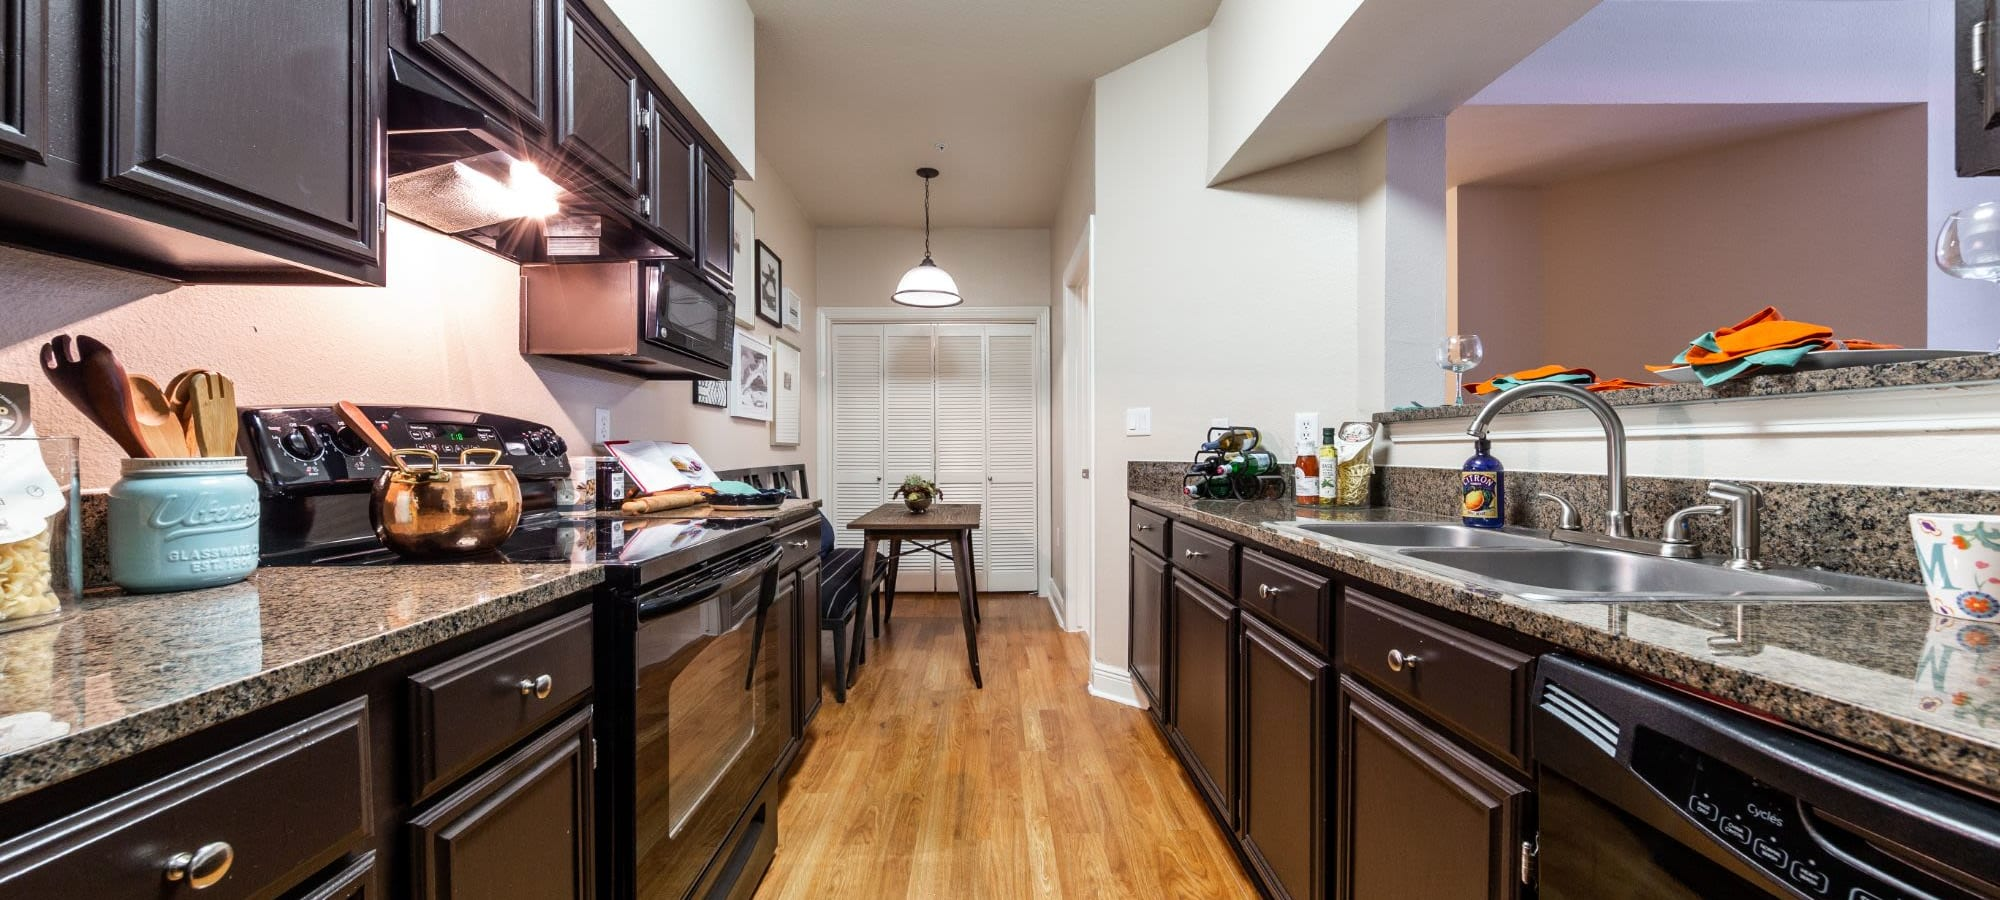 Schedule a tour of Marquis on Pin Oak in Houston, Texas